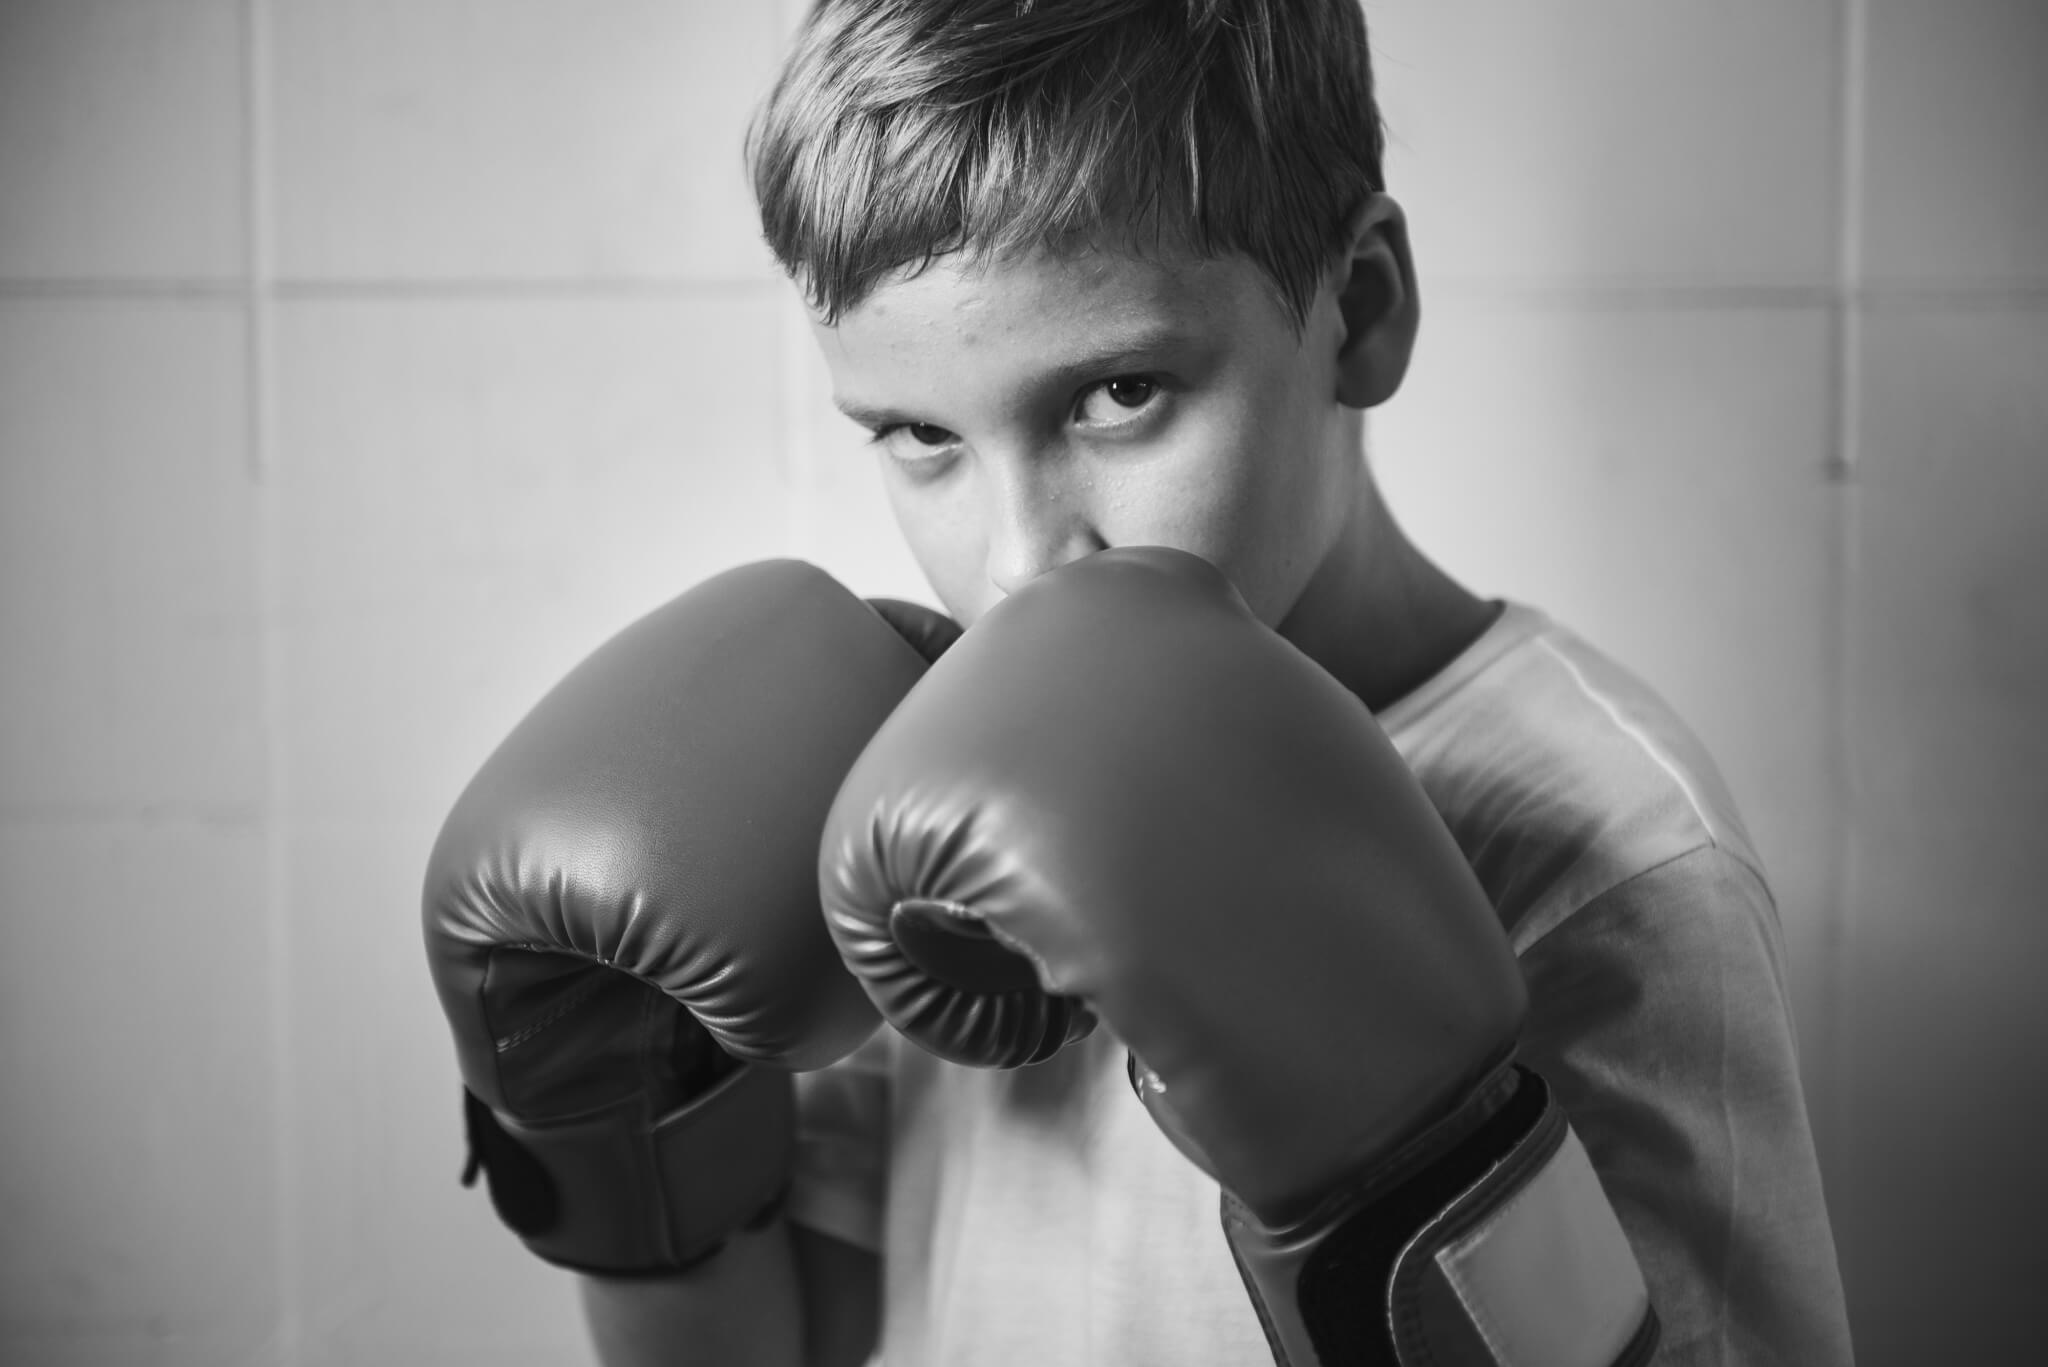 determined child wearing boxing gloves